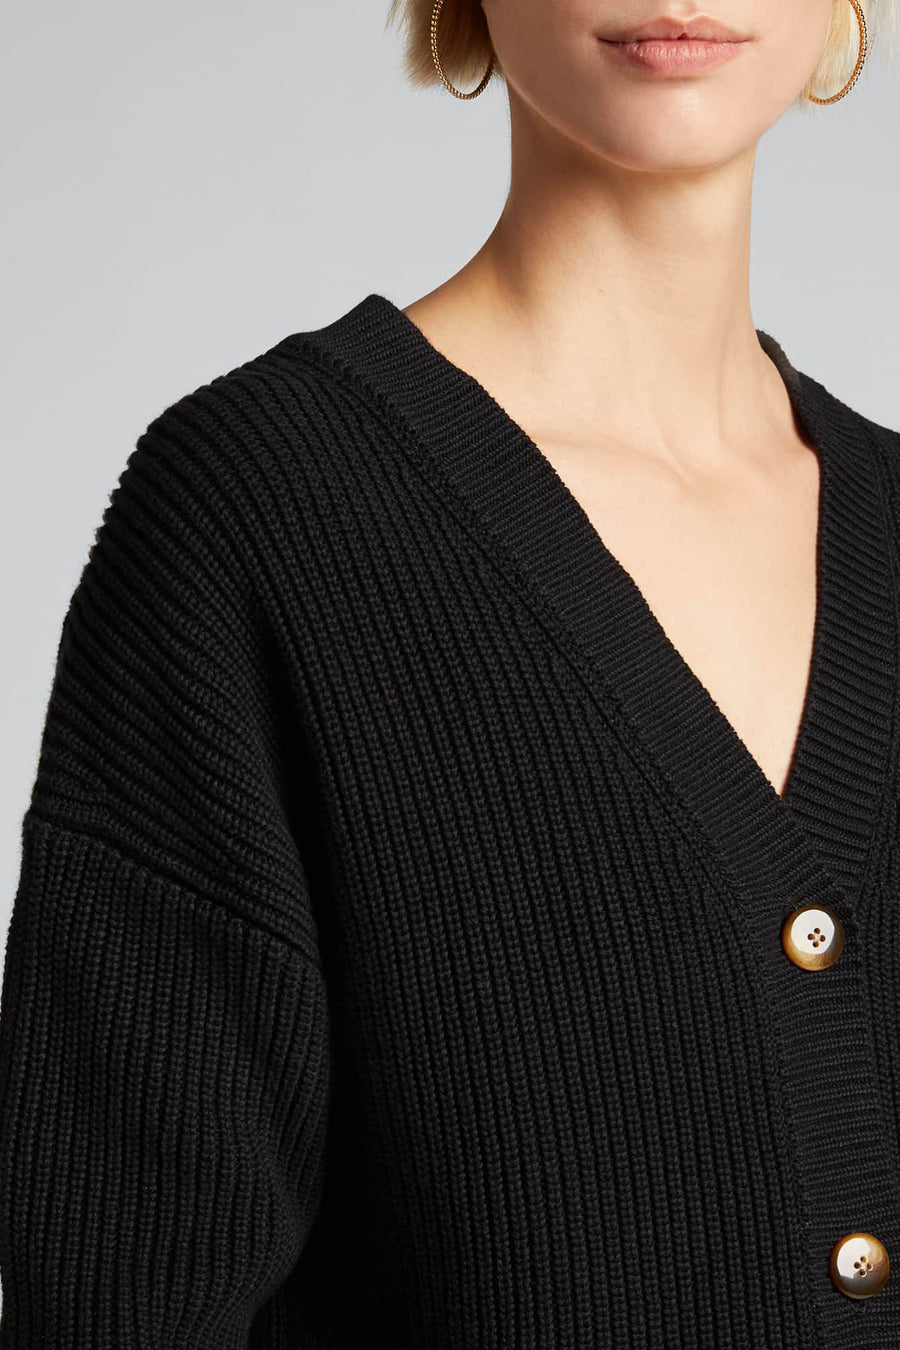 Rib Stitch Cardigan - Black - Pavilion